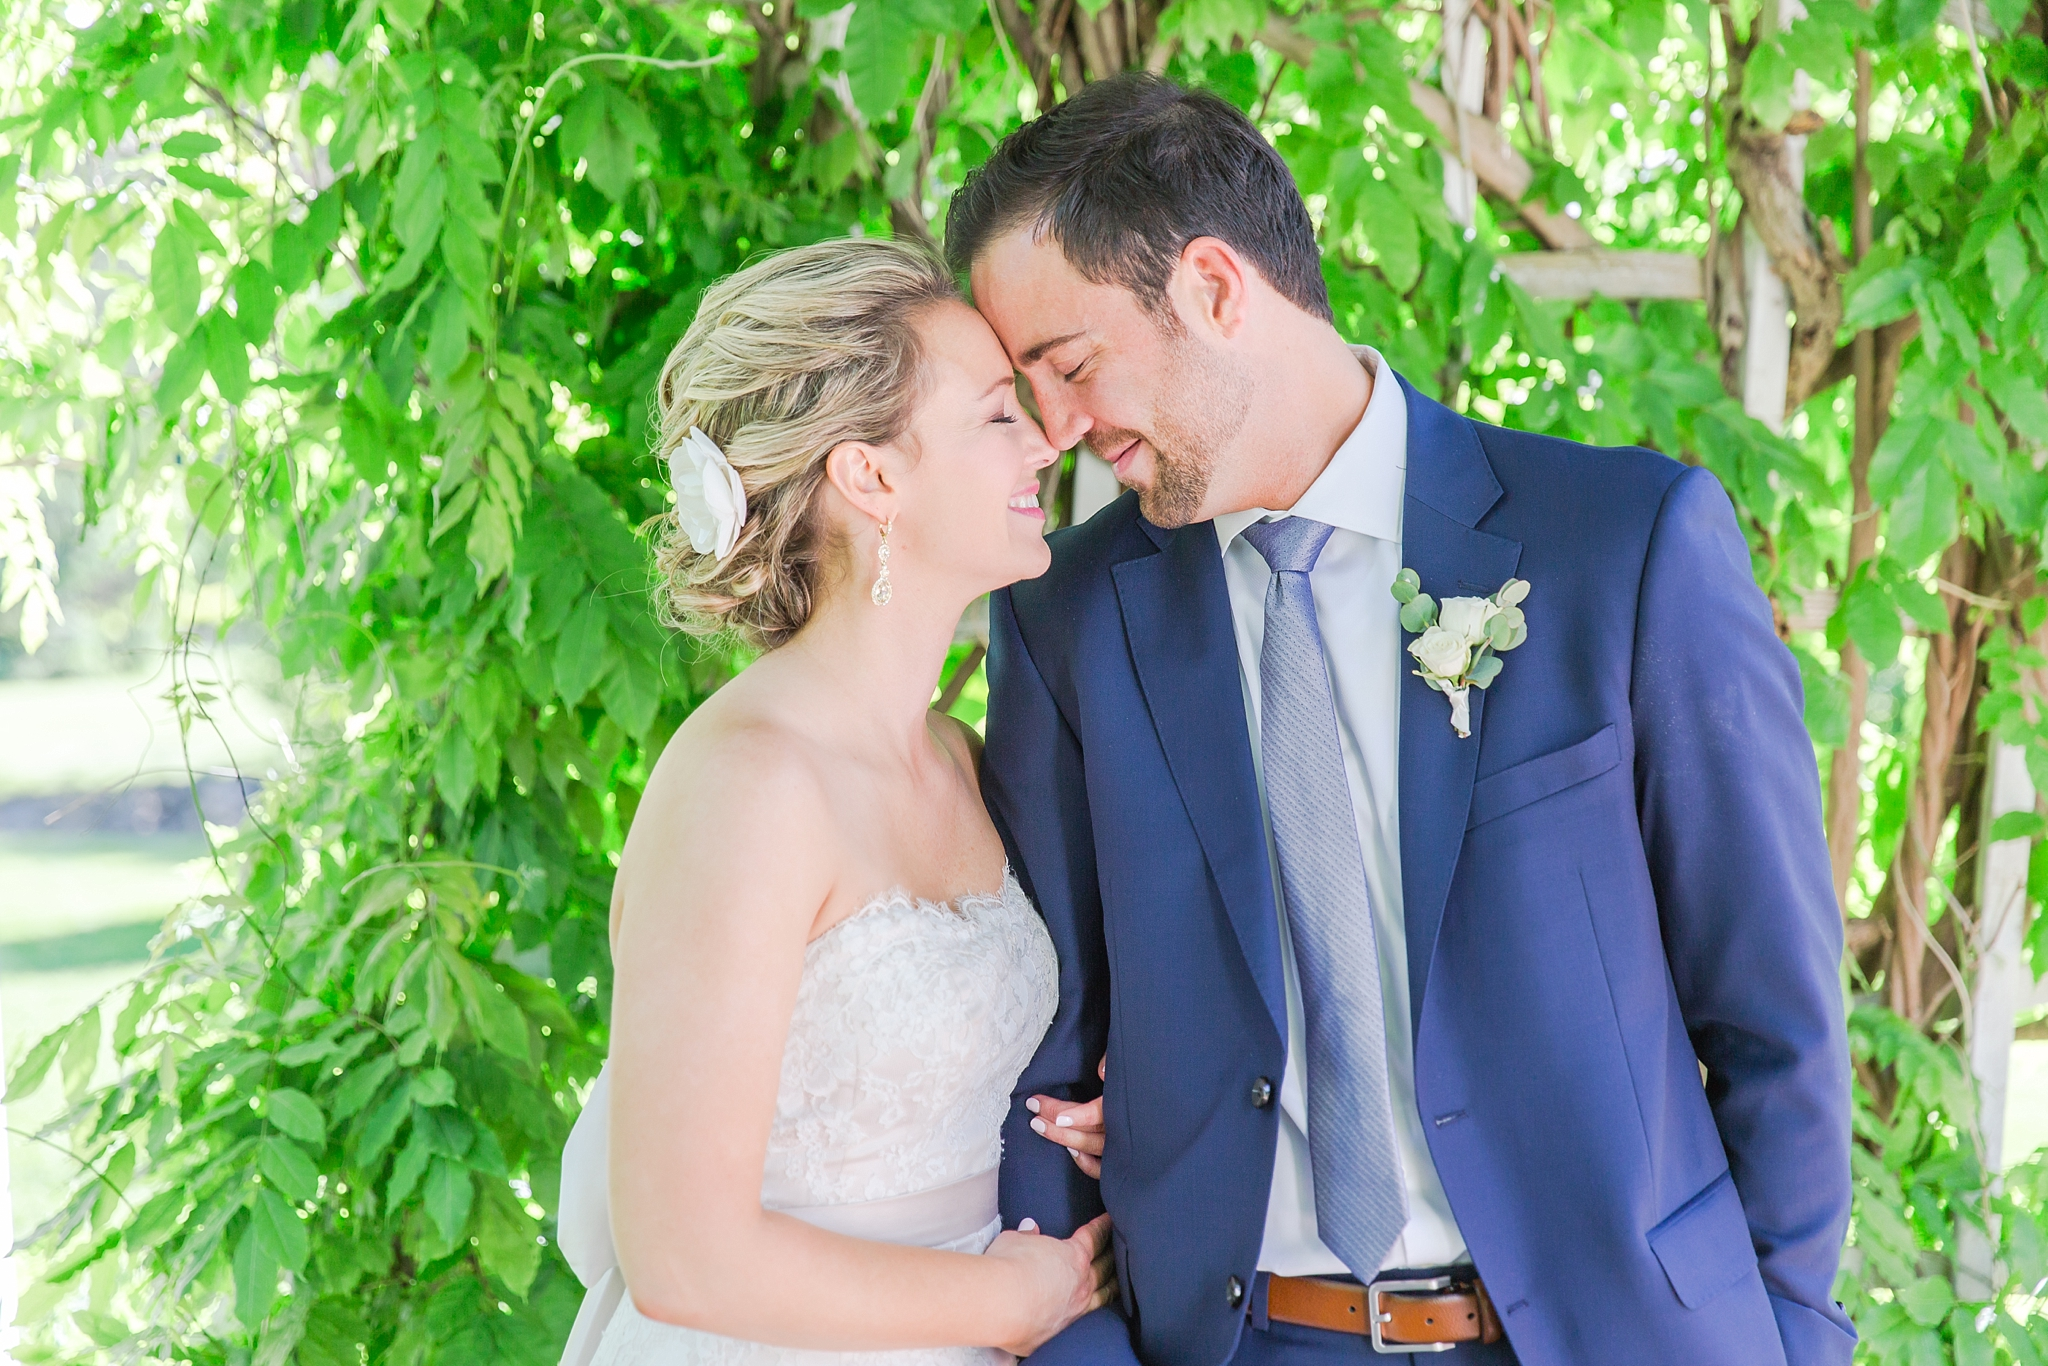 fun-candid-laid-back-wedding-photos-at-wellers-carriage-house-in-saline-michigan-and-at-the-eagle-crest-golf-resort-by-courtney-carolyn-photography_0050.jpg